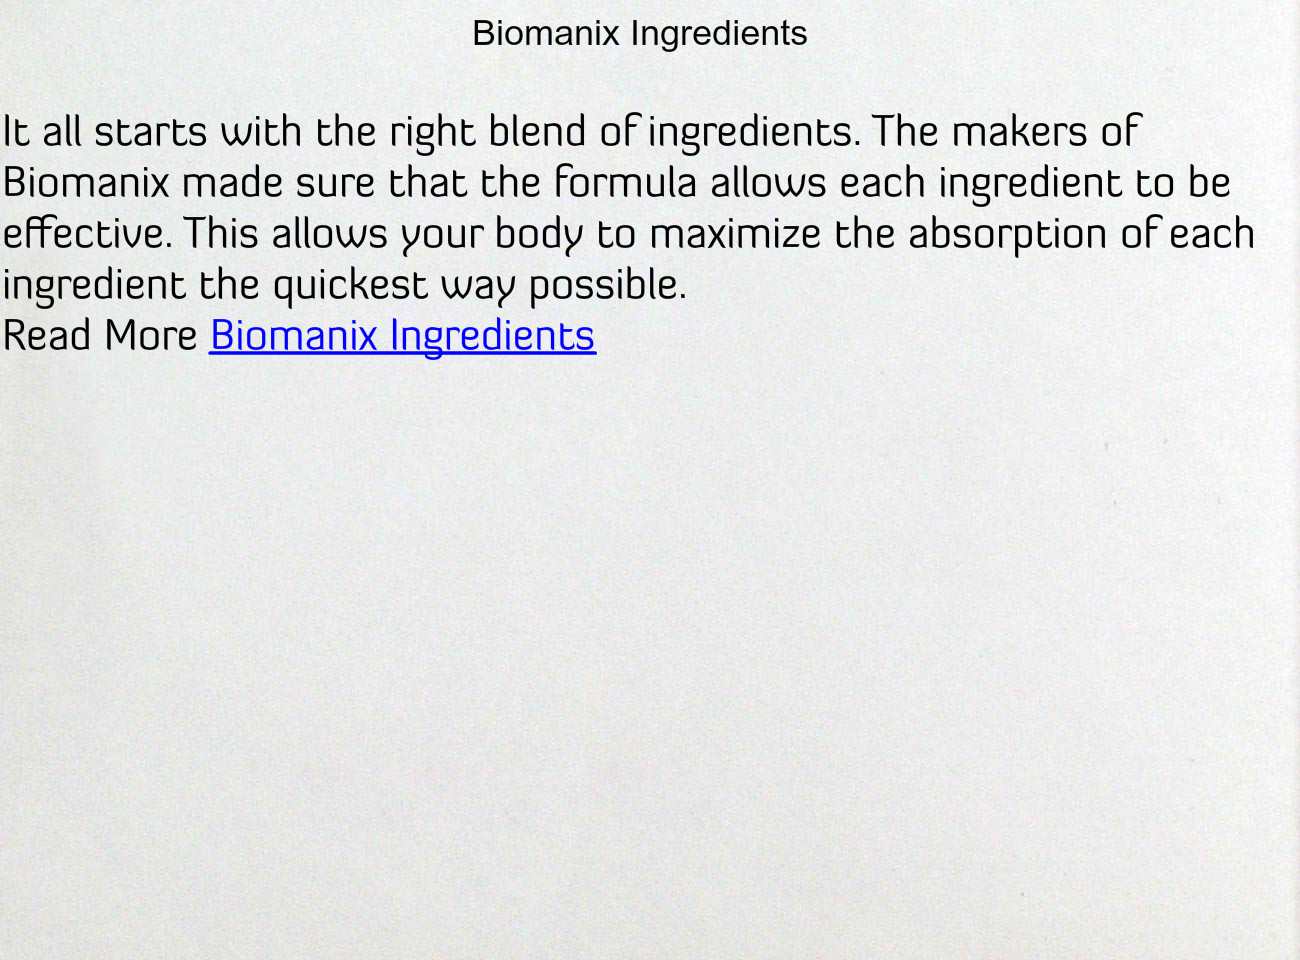 biomanix ingredients text images music video glogster edu